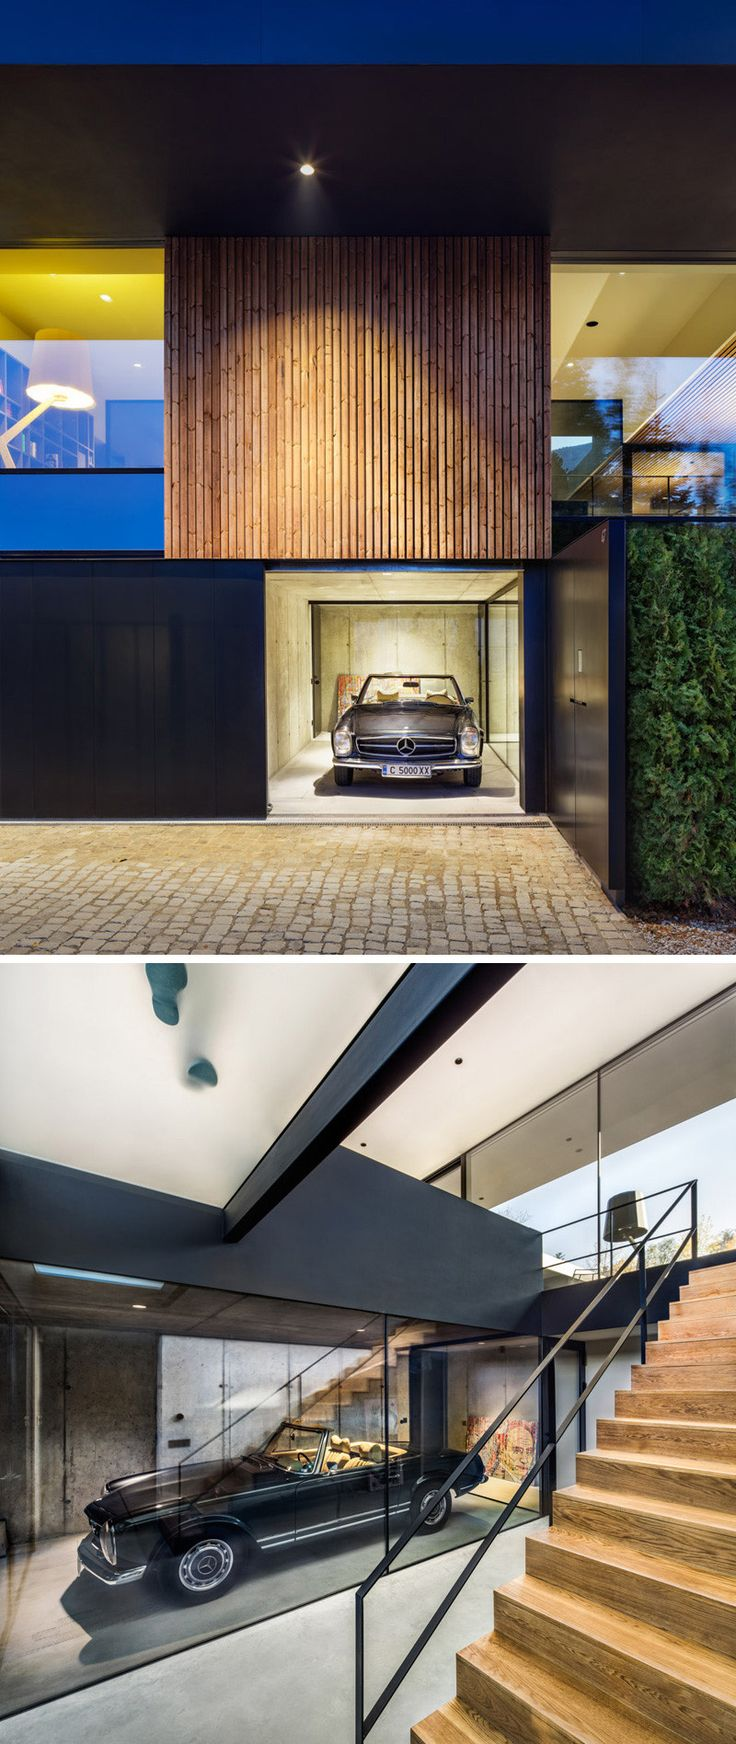 At the side of this home, is a single car garage. The garage is more like a showcase of the home owner's car, clearly visible through the glass windows.